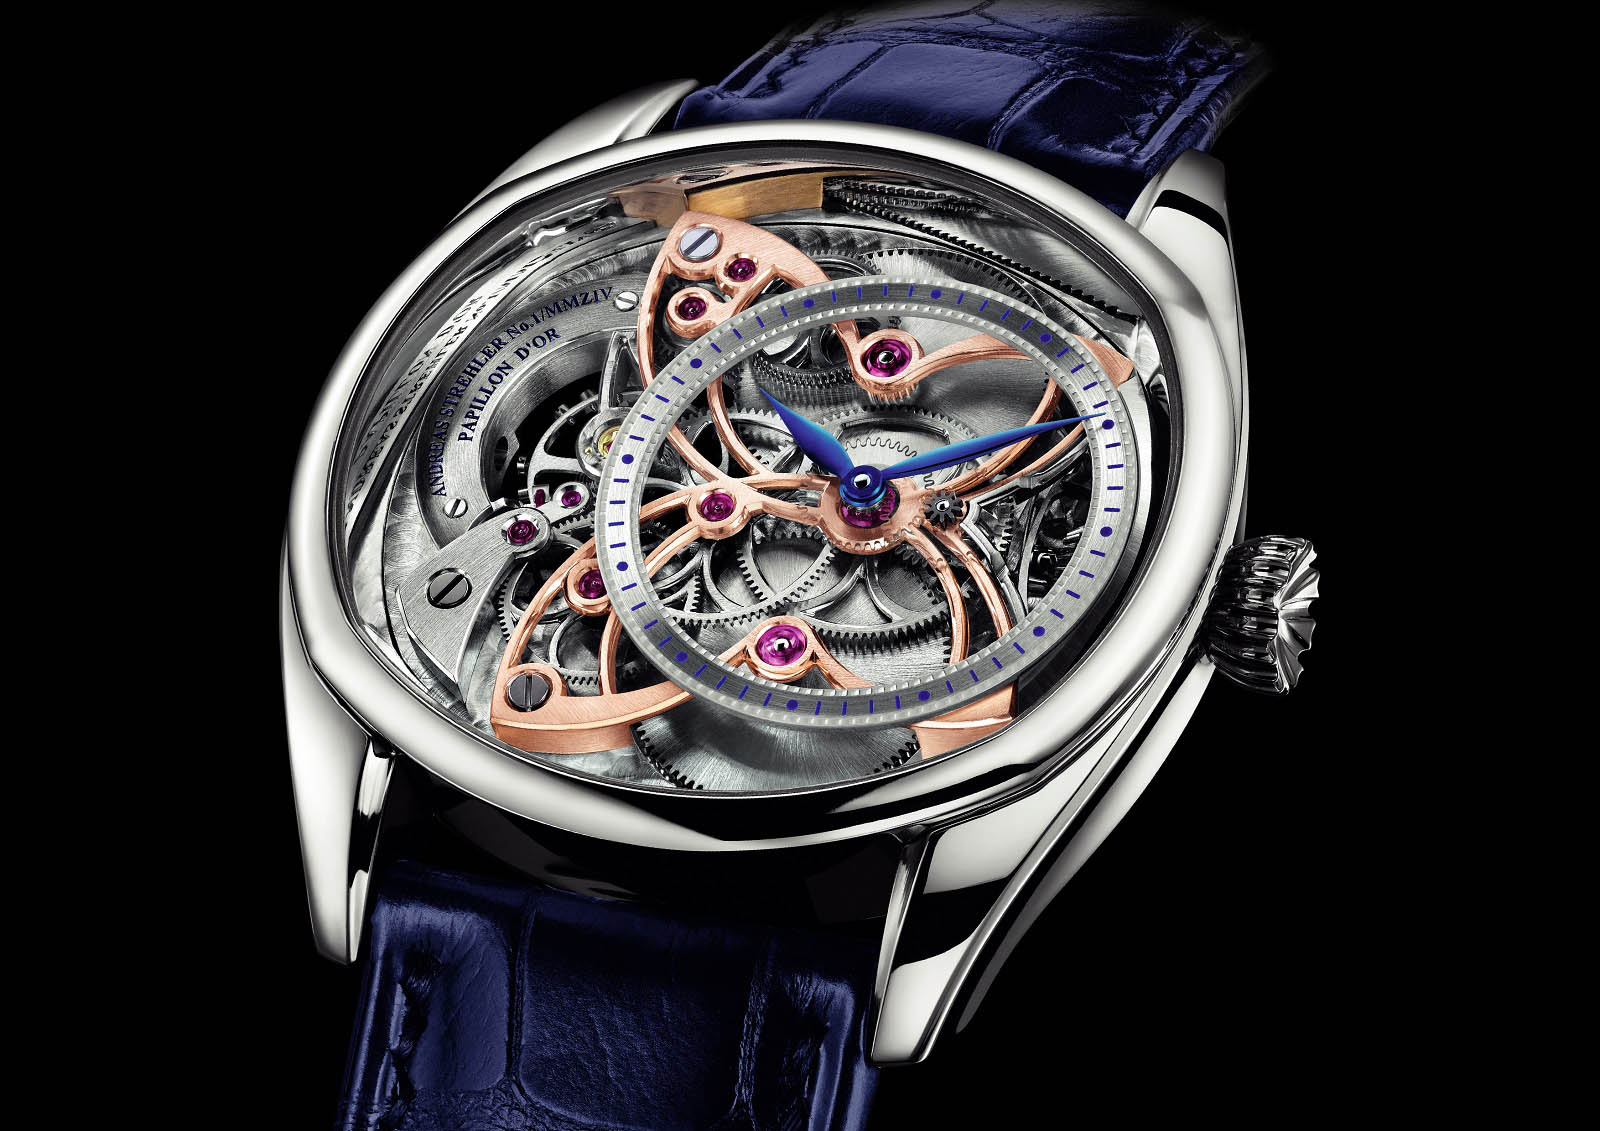 Andreas Strehler Papillon D'Or 04